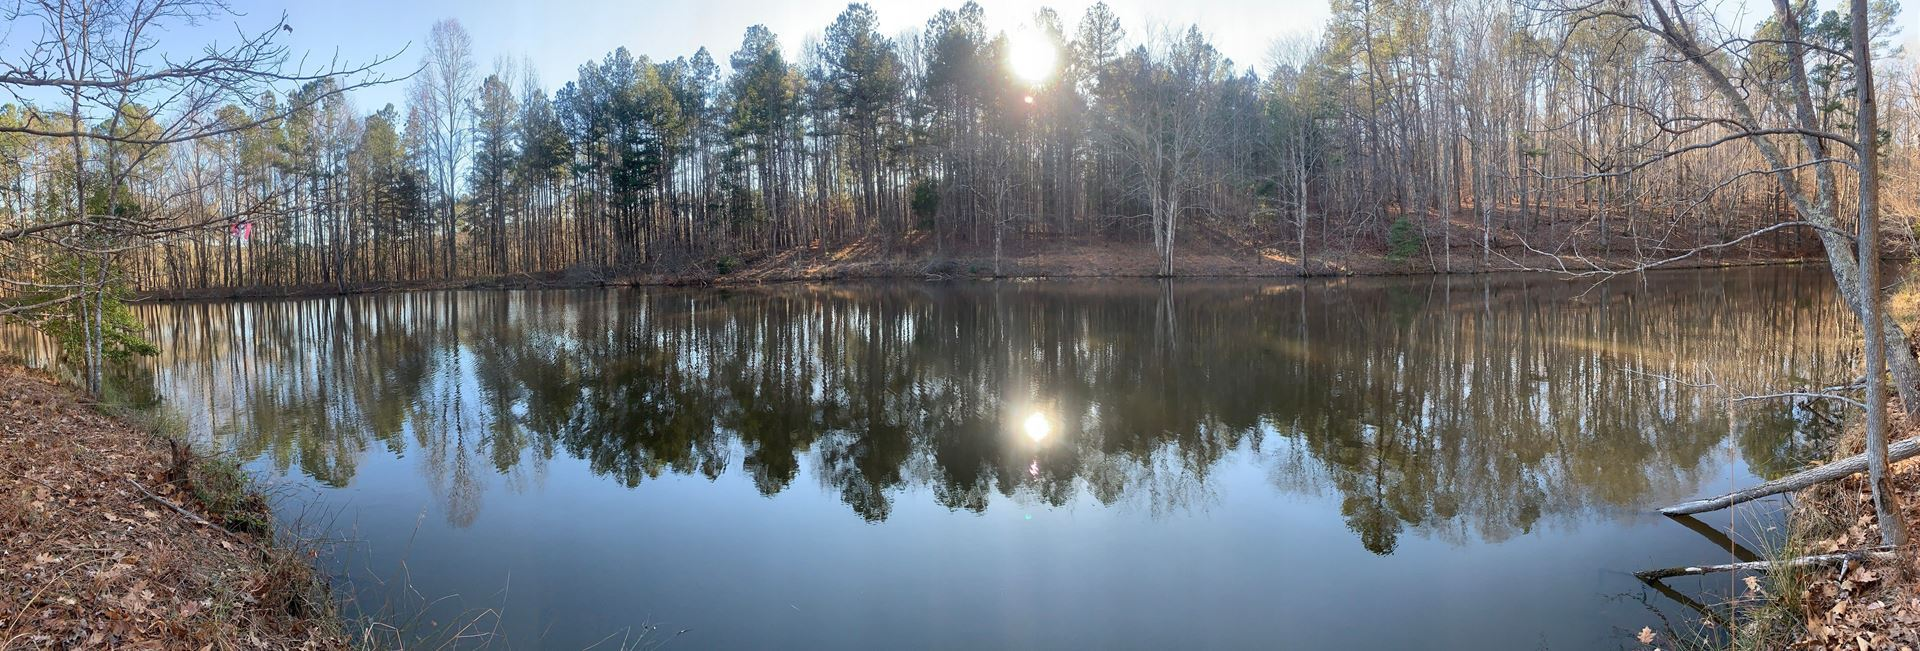 Foxcroft Lake, Odd Fellows Tract